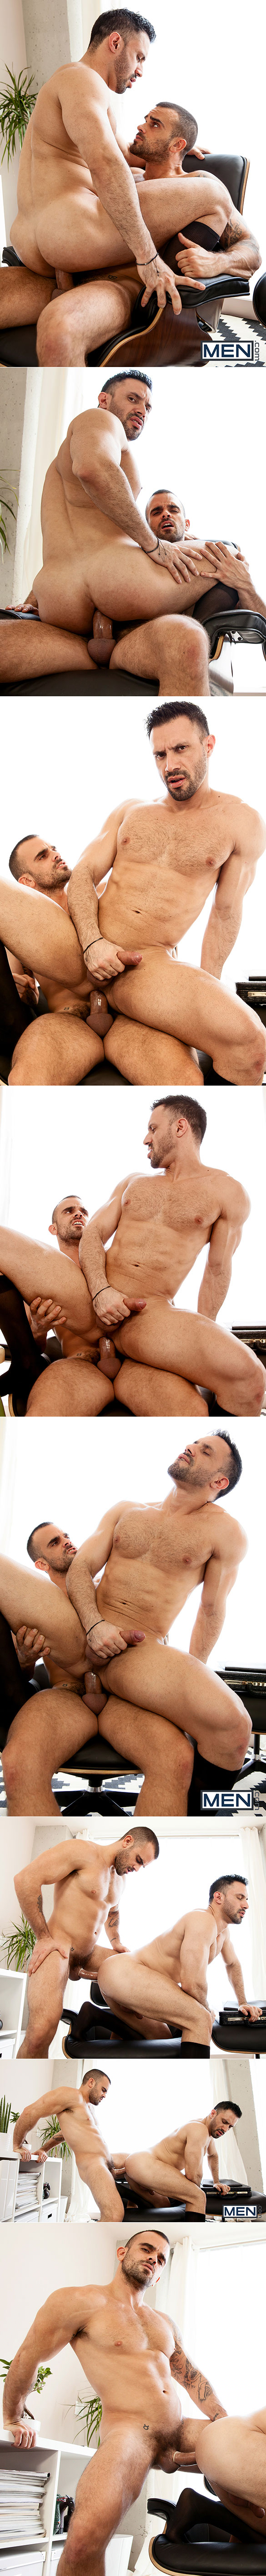 "Men.com: Damien Crosse fucks Flex Xtremmo in ""Another Life, Part 1"""